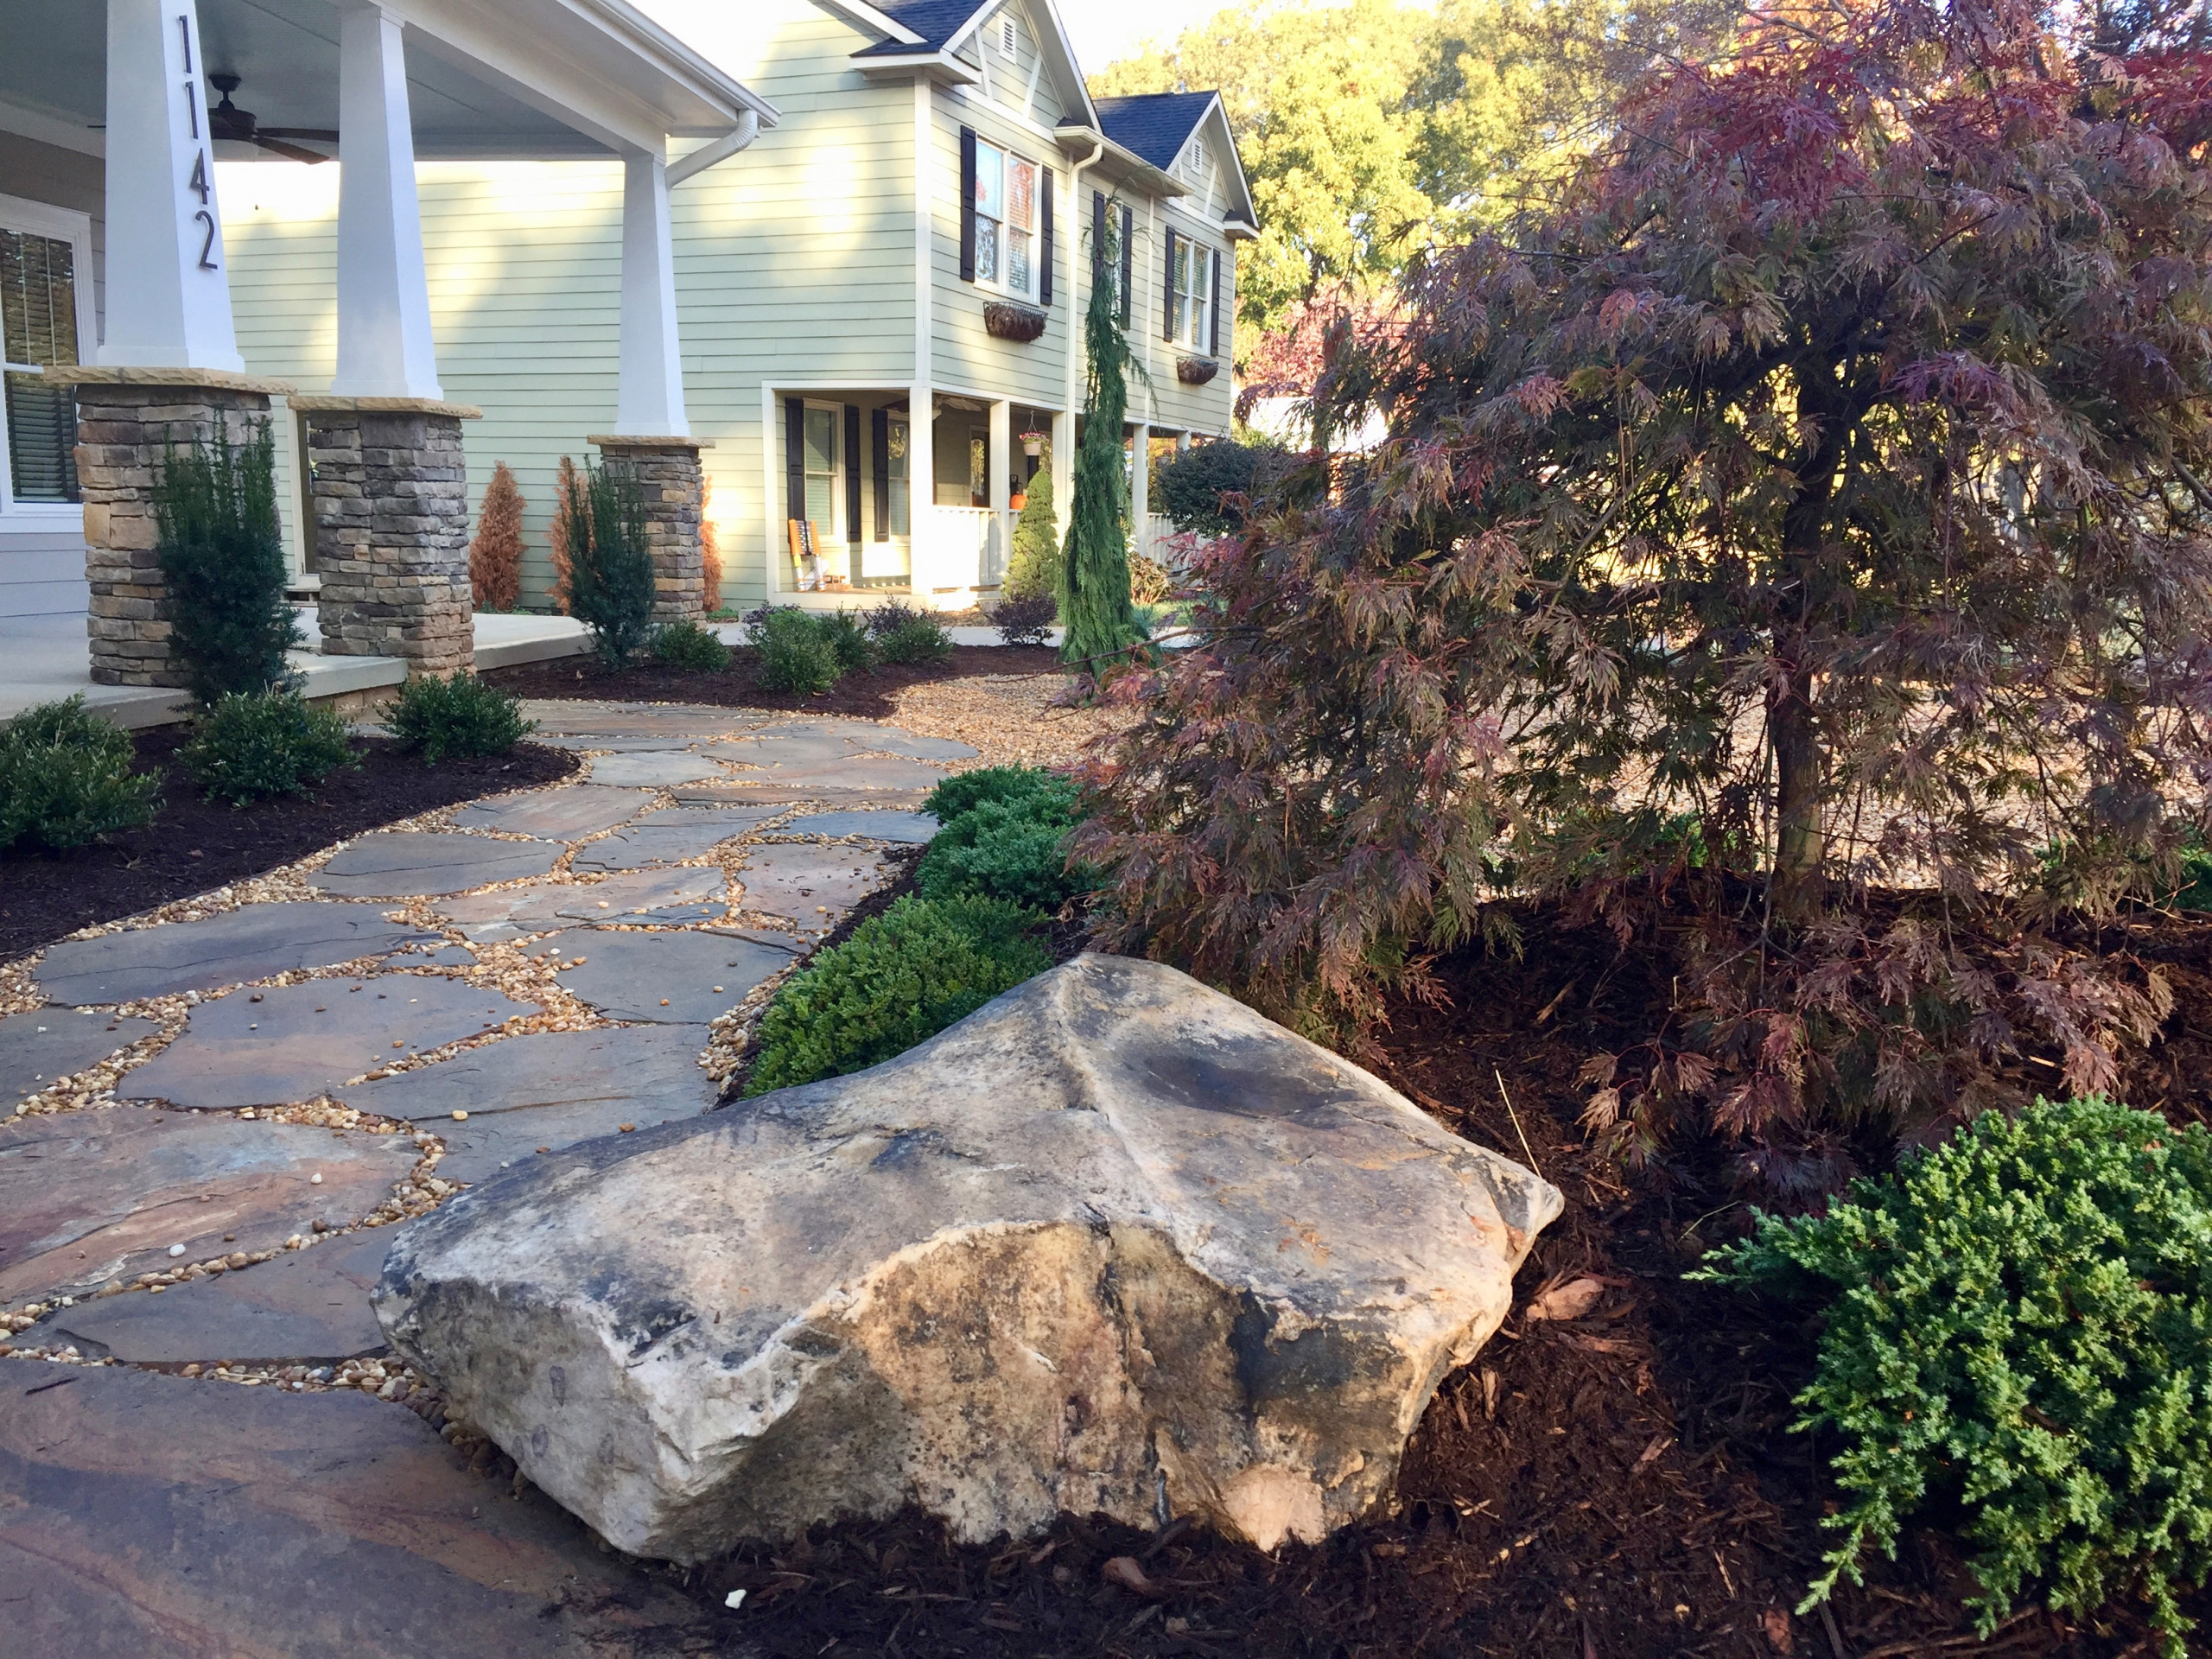 Boulders and Japanese maple